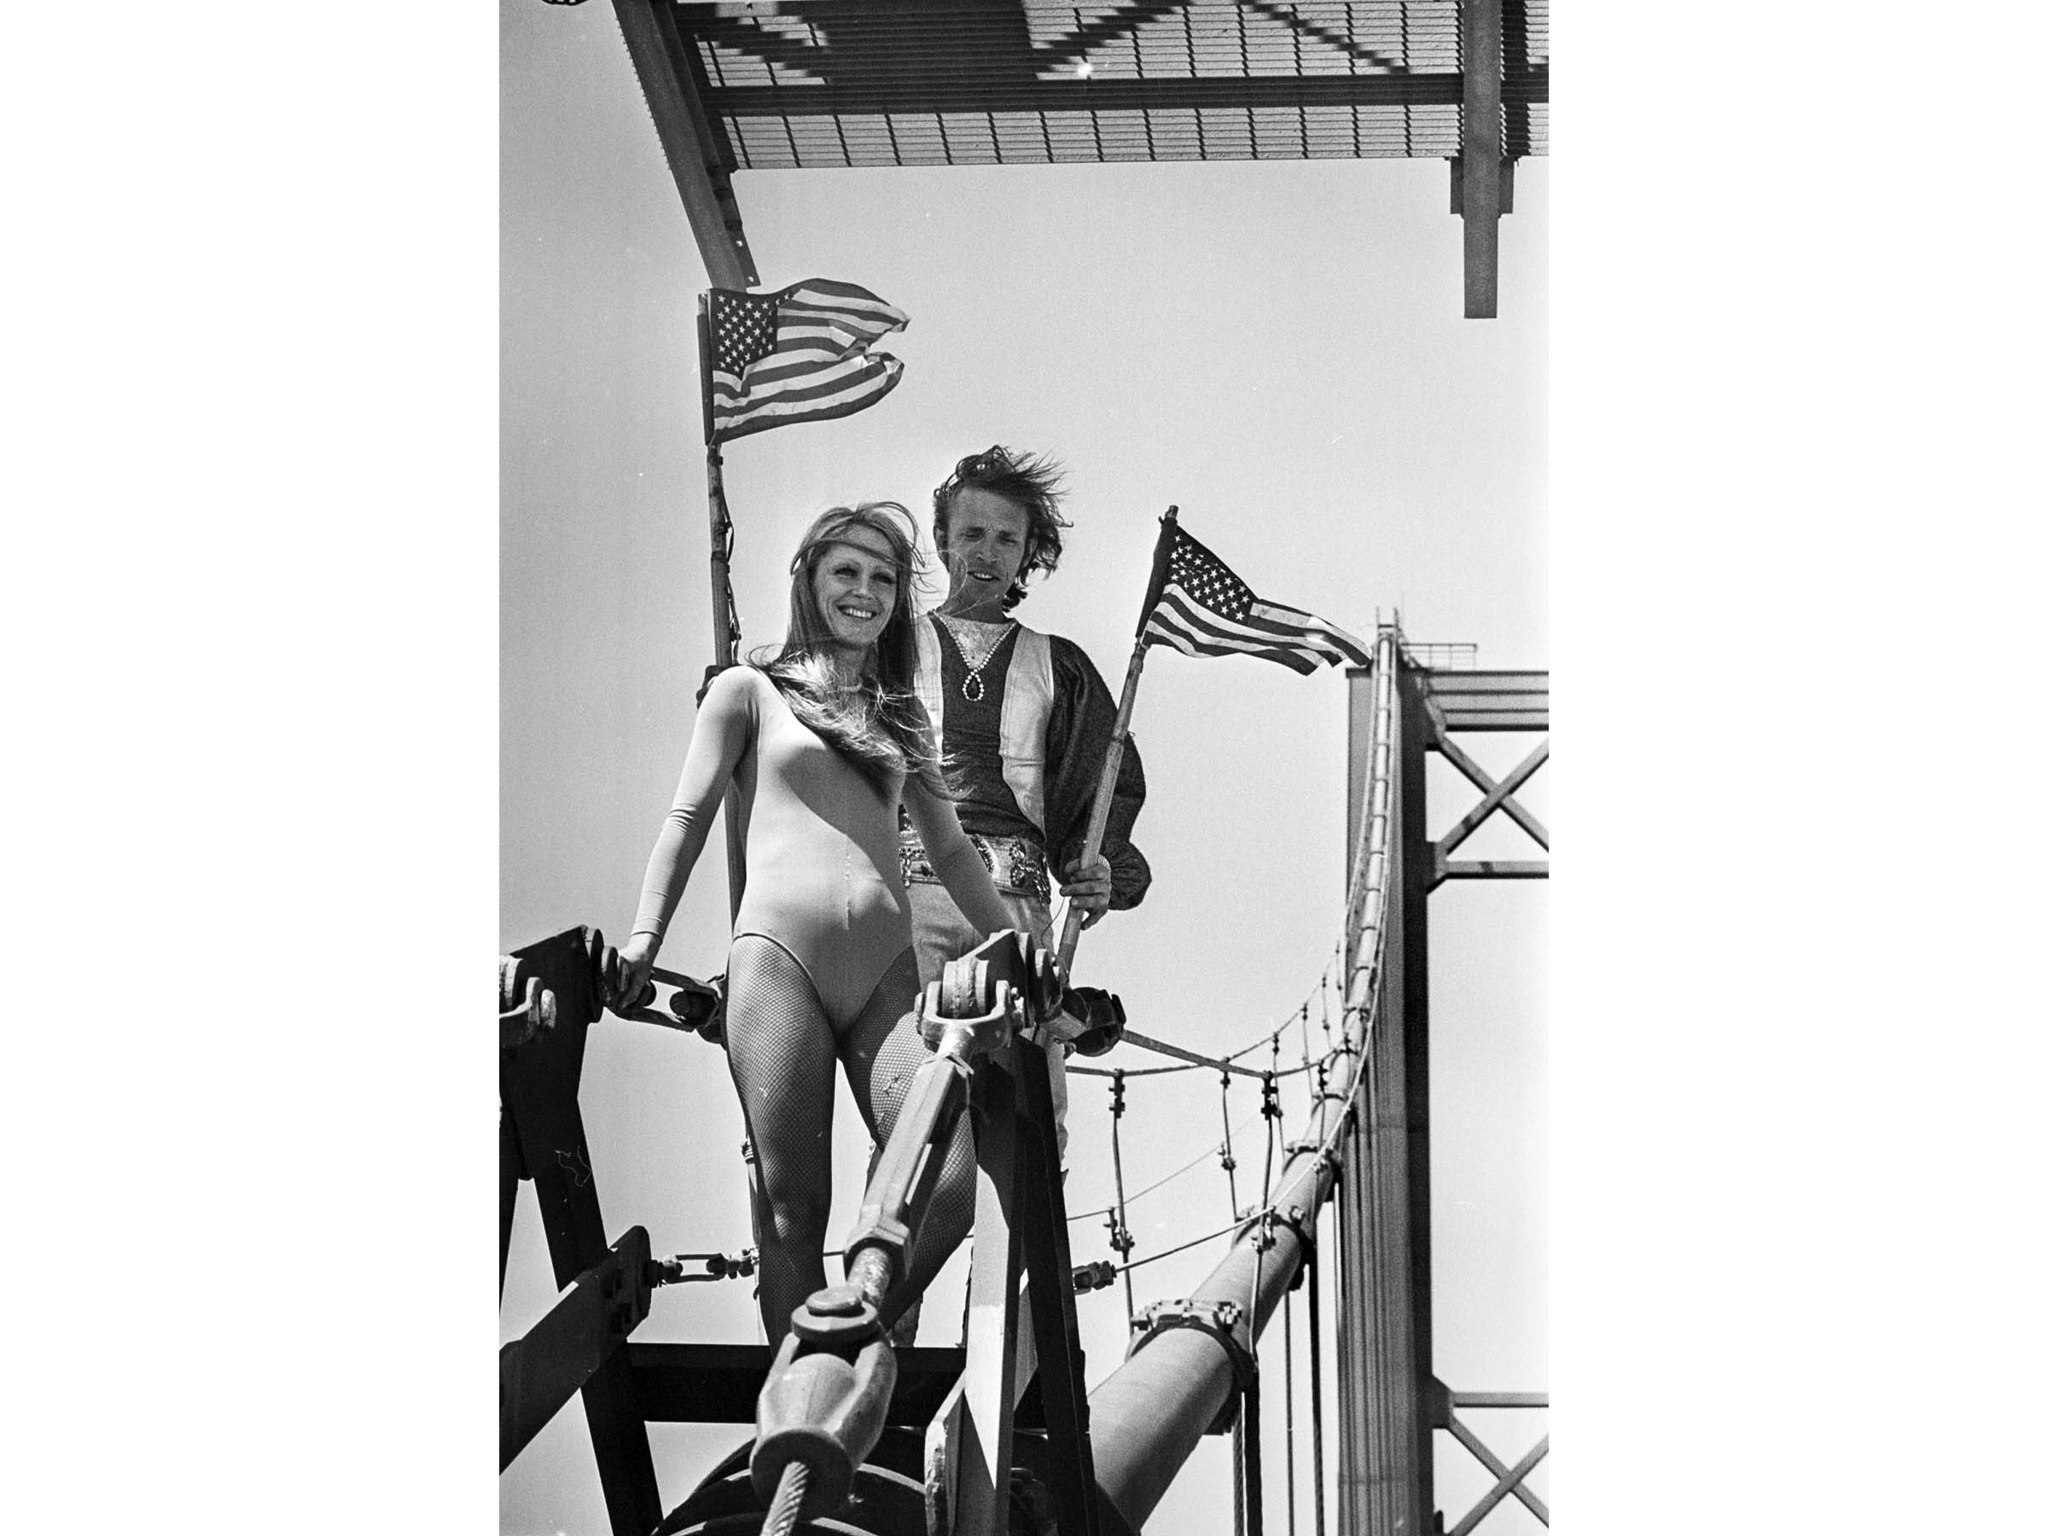 April 2, 1976: Tightrope-walker Steve McPeak, right, and his Celeste Farr, just after they crossed t